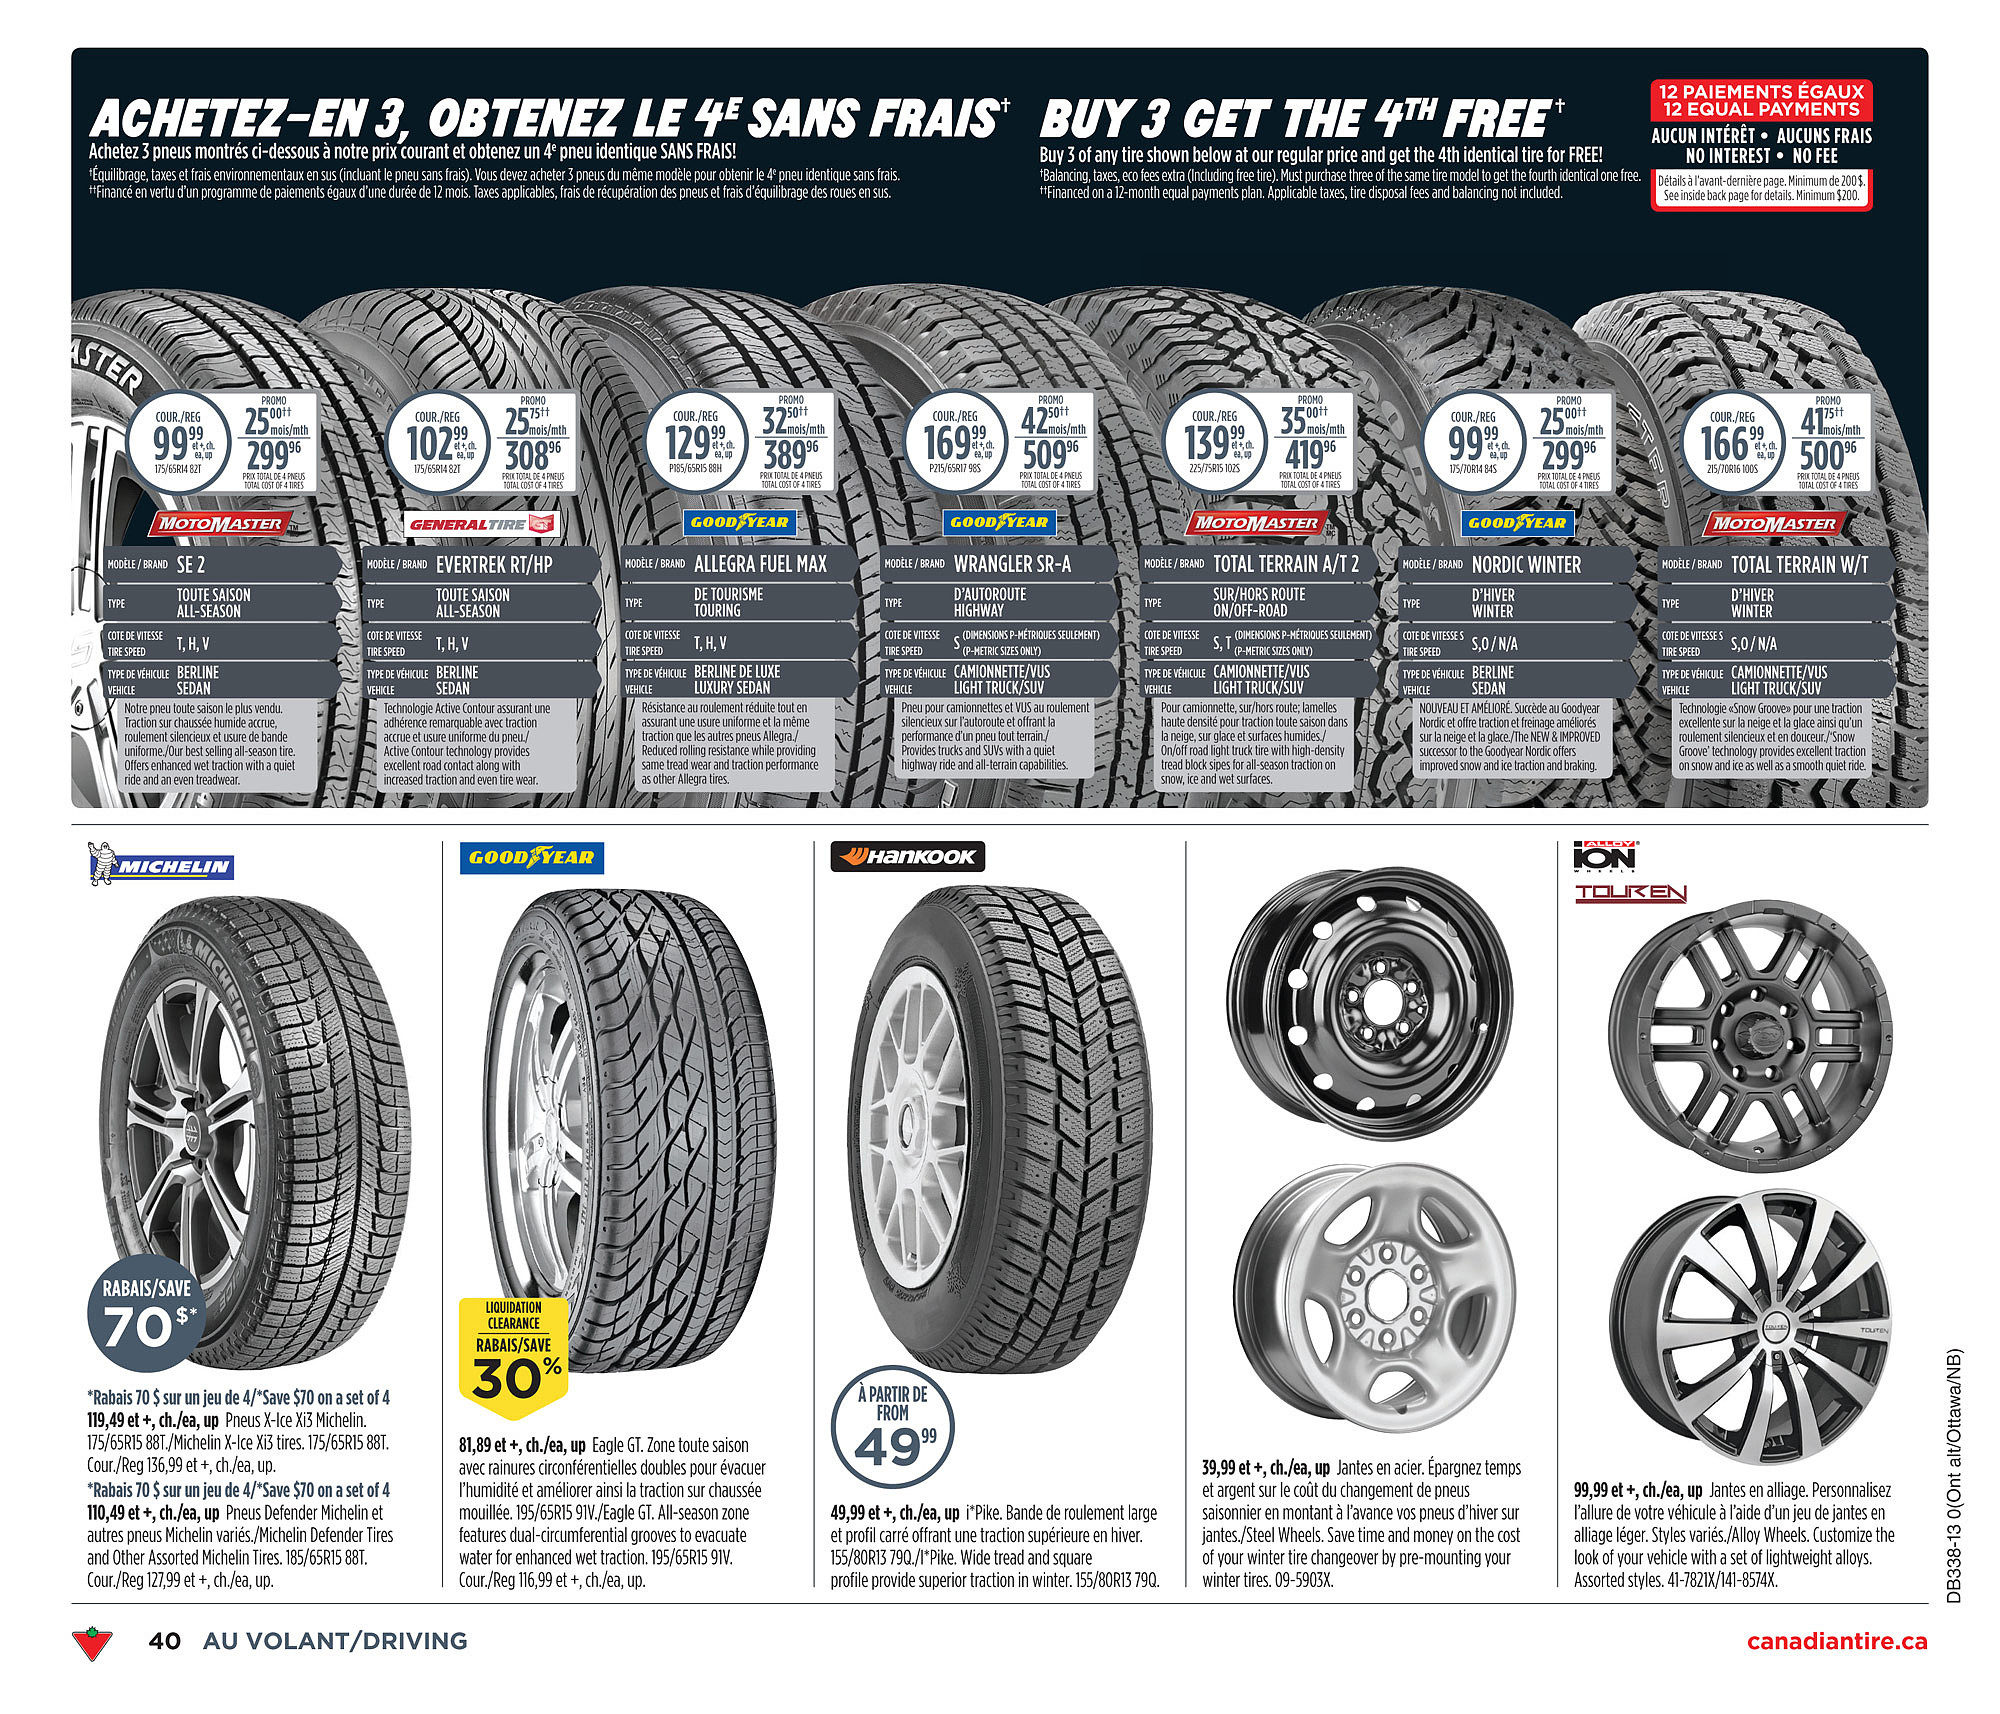 Canadian Tire Weekly Flyer Weekly Flyer Sep 12 19